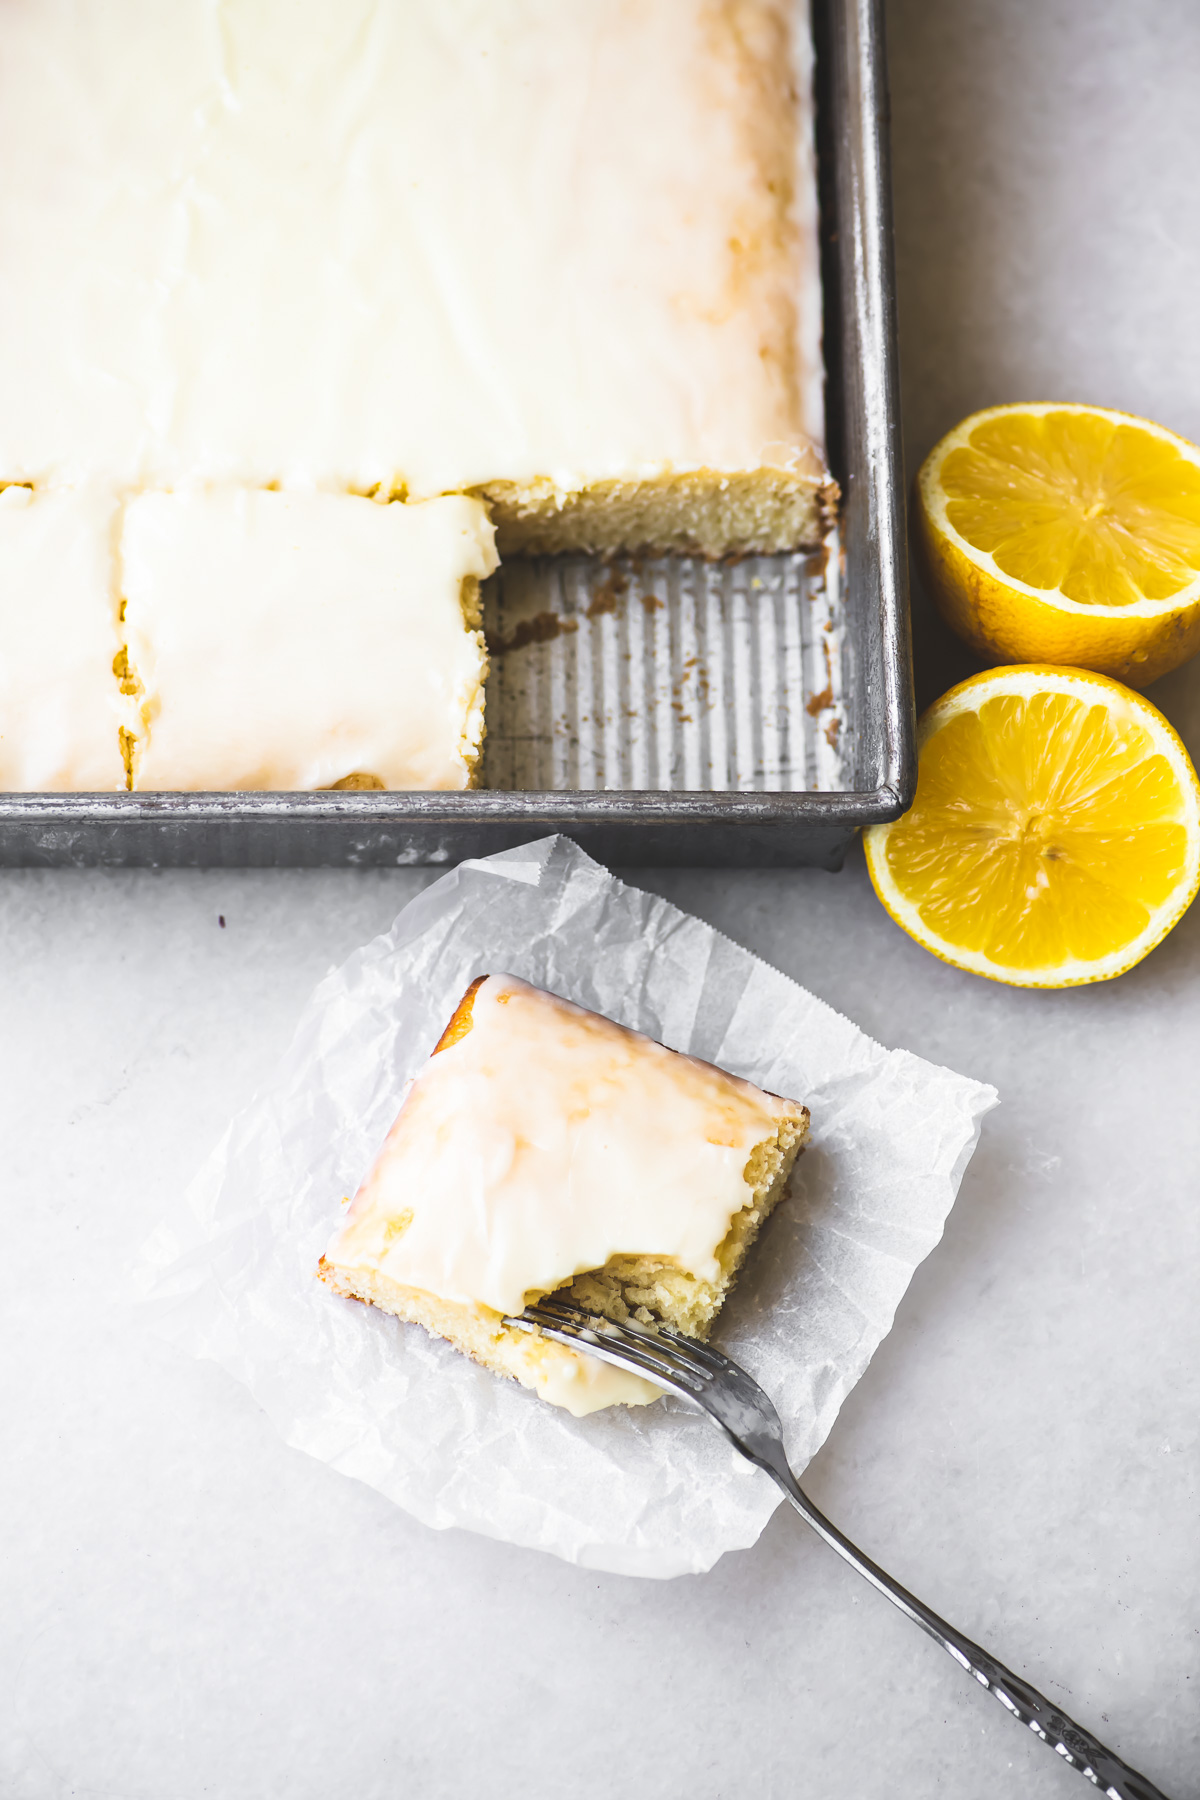 Lemon Velvet Sheet Cake with lemon halves